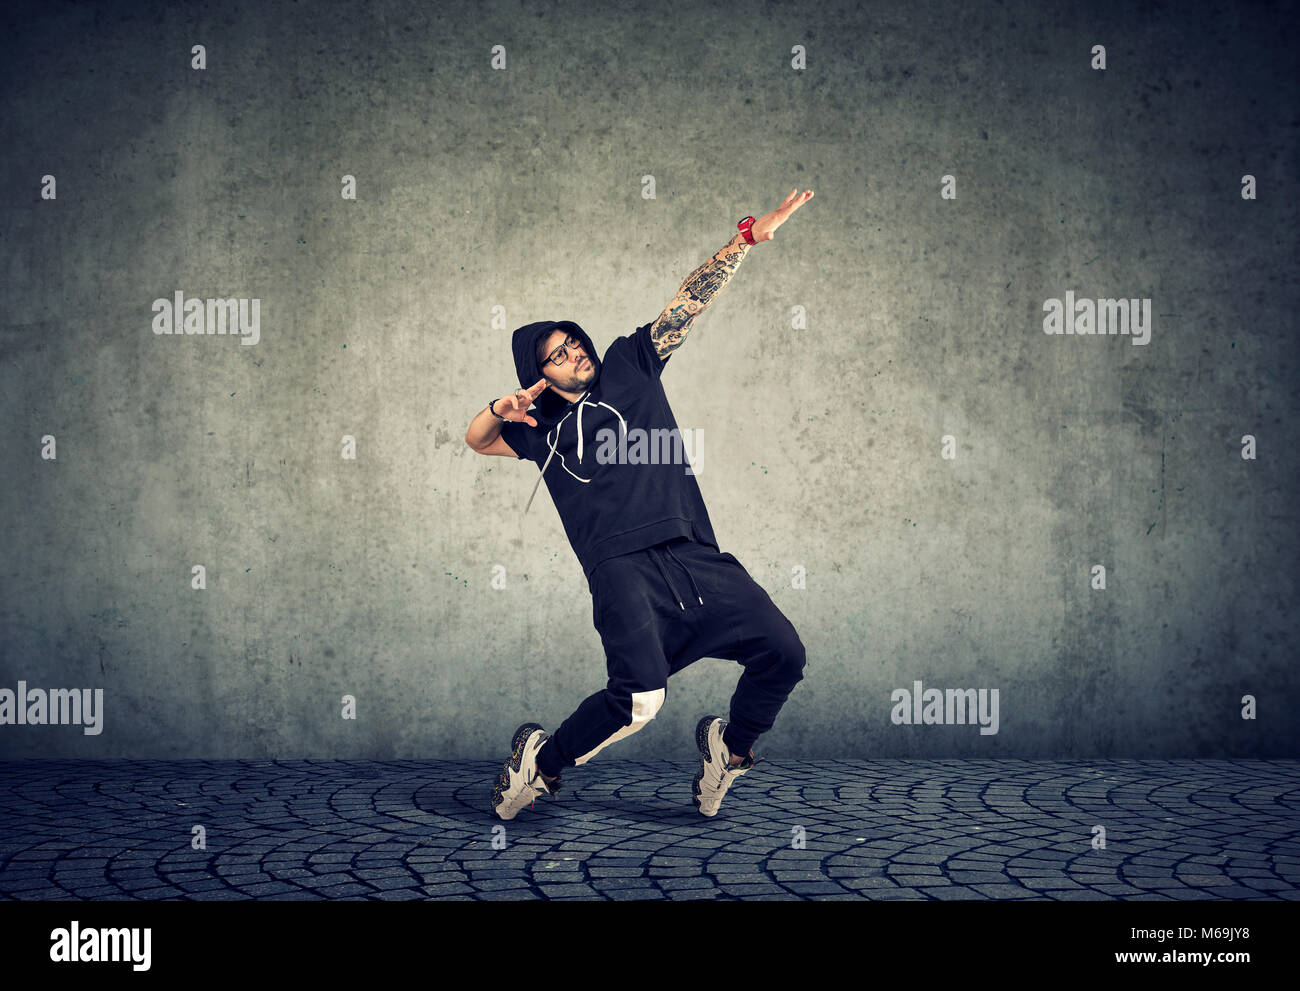 Stylish young man in trendy sportive clothing performing street dance with expression on gray background. - Stock Image